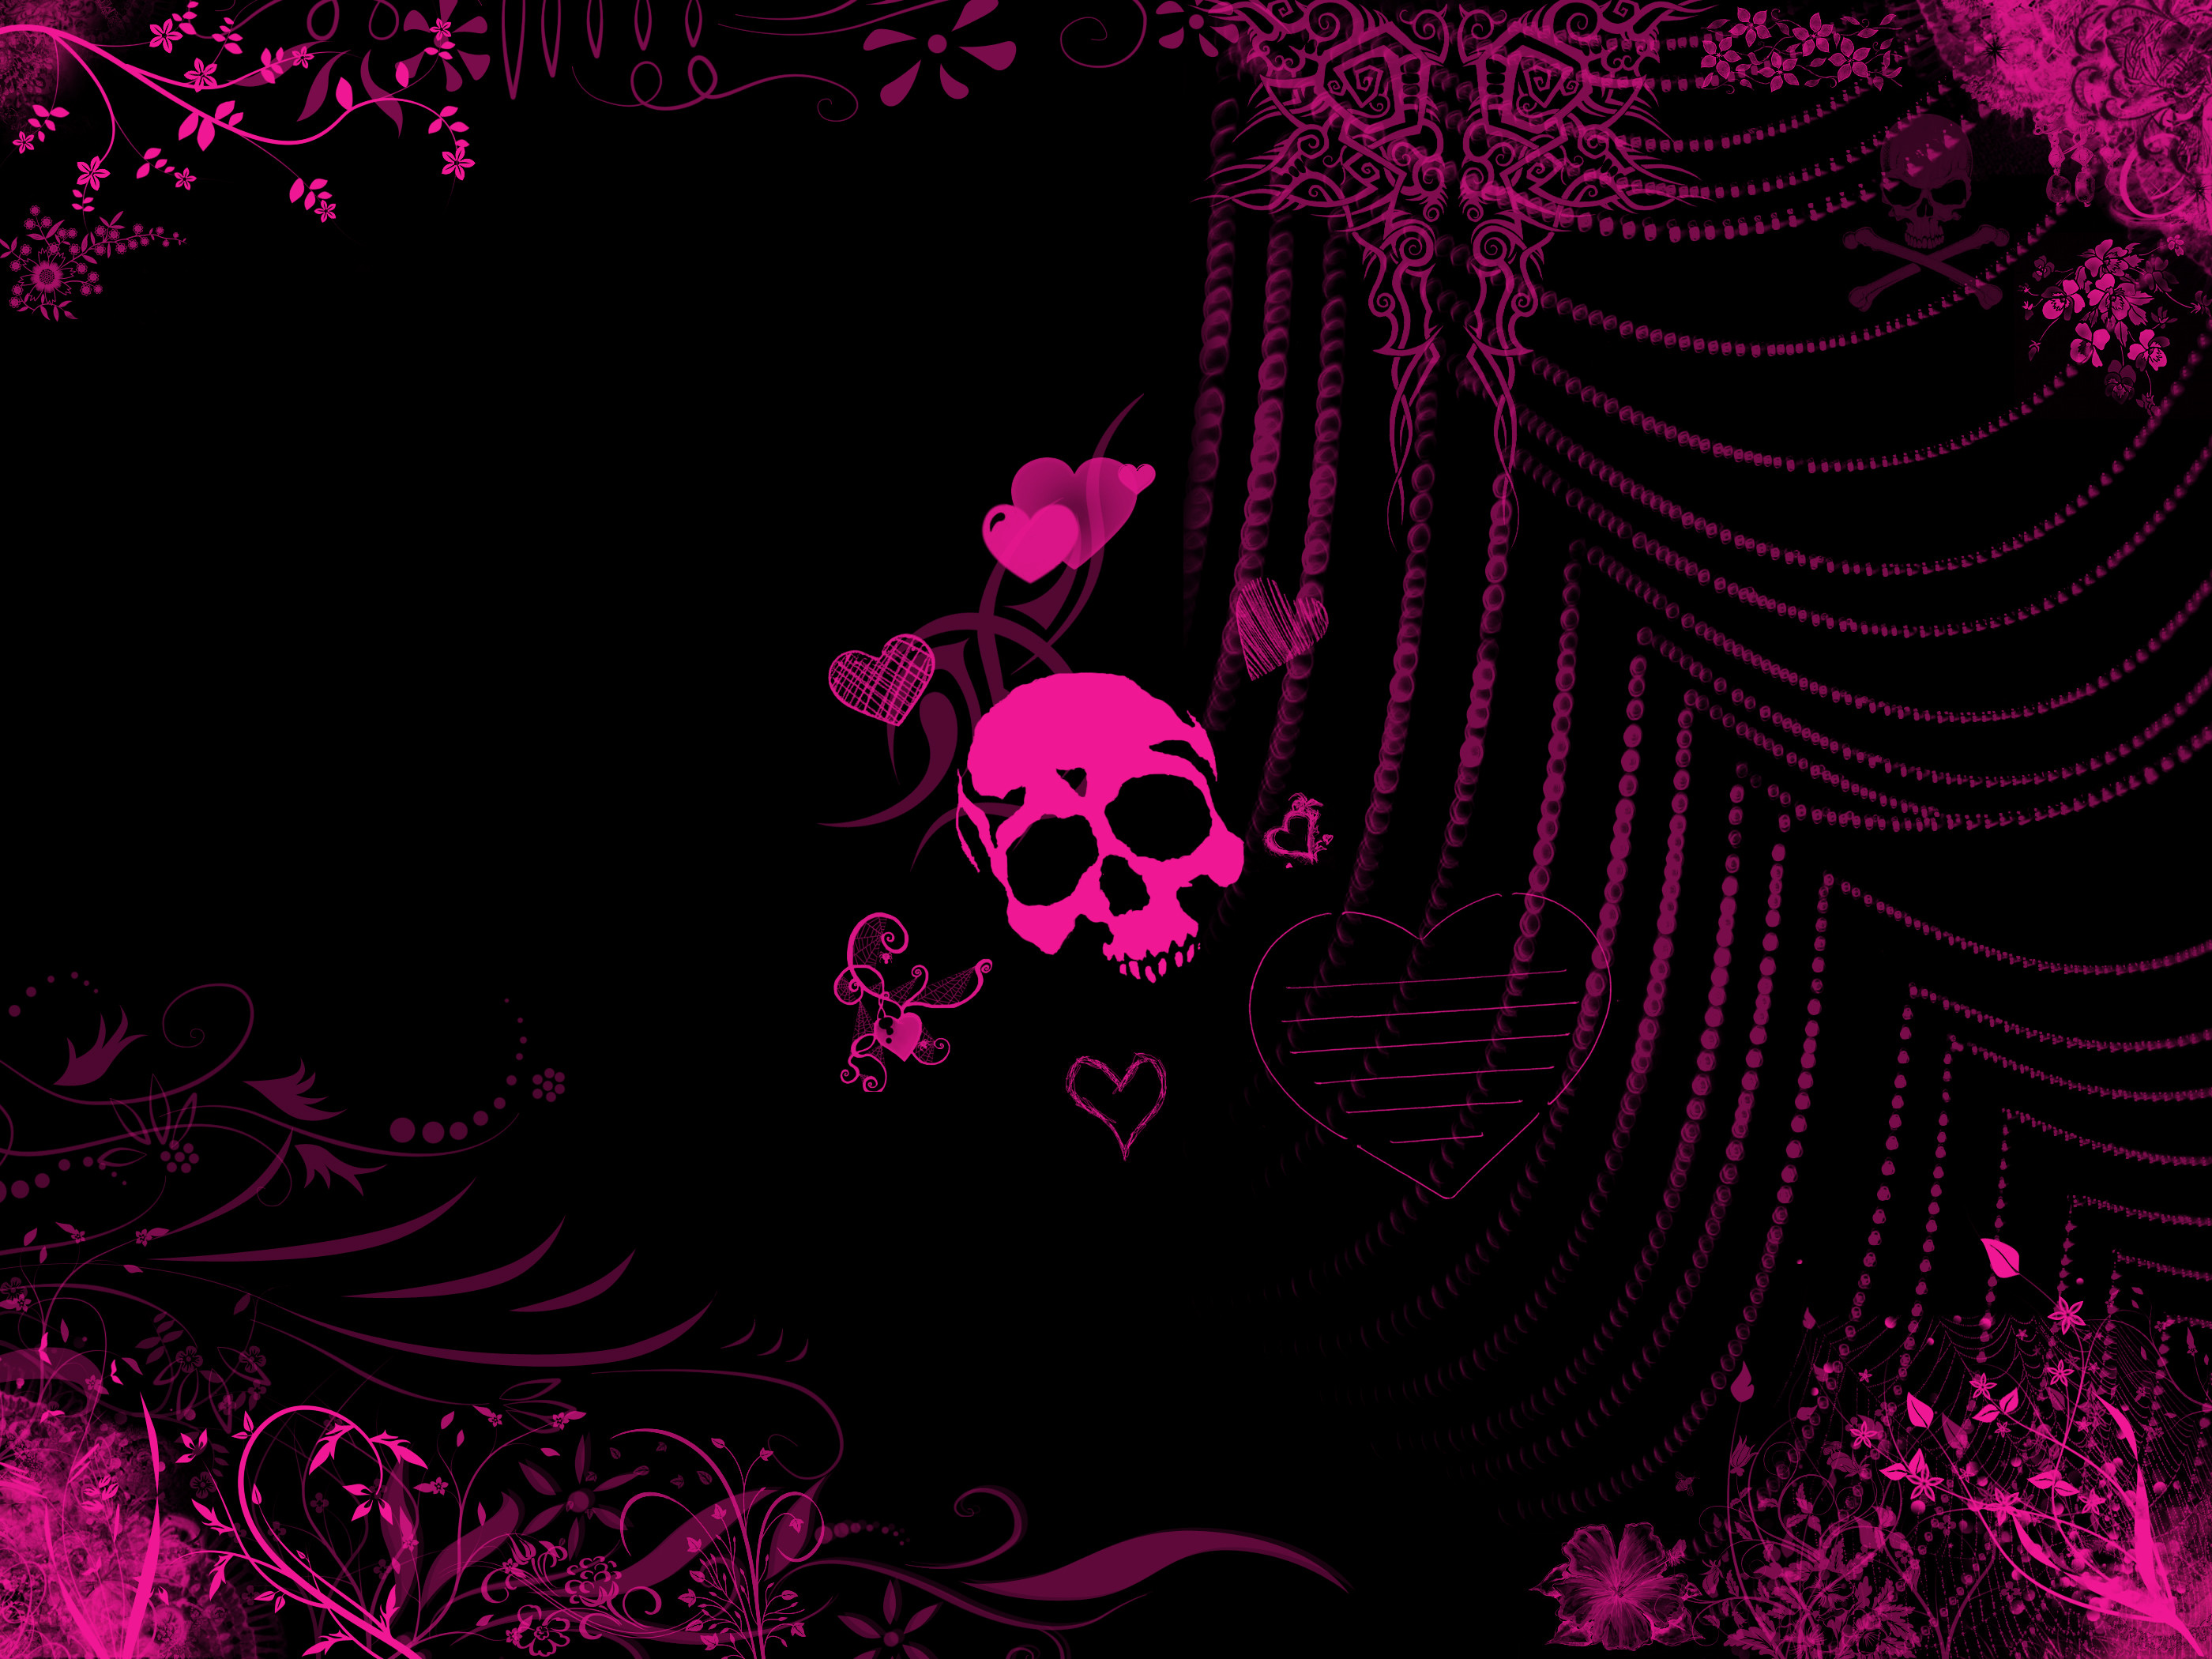 2800x2100 Girly Skull Wallpaper Related wallpaper for pink emo